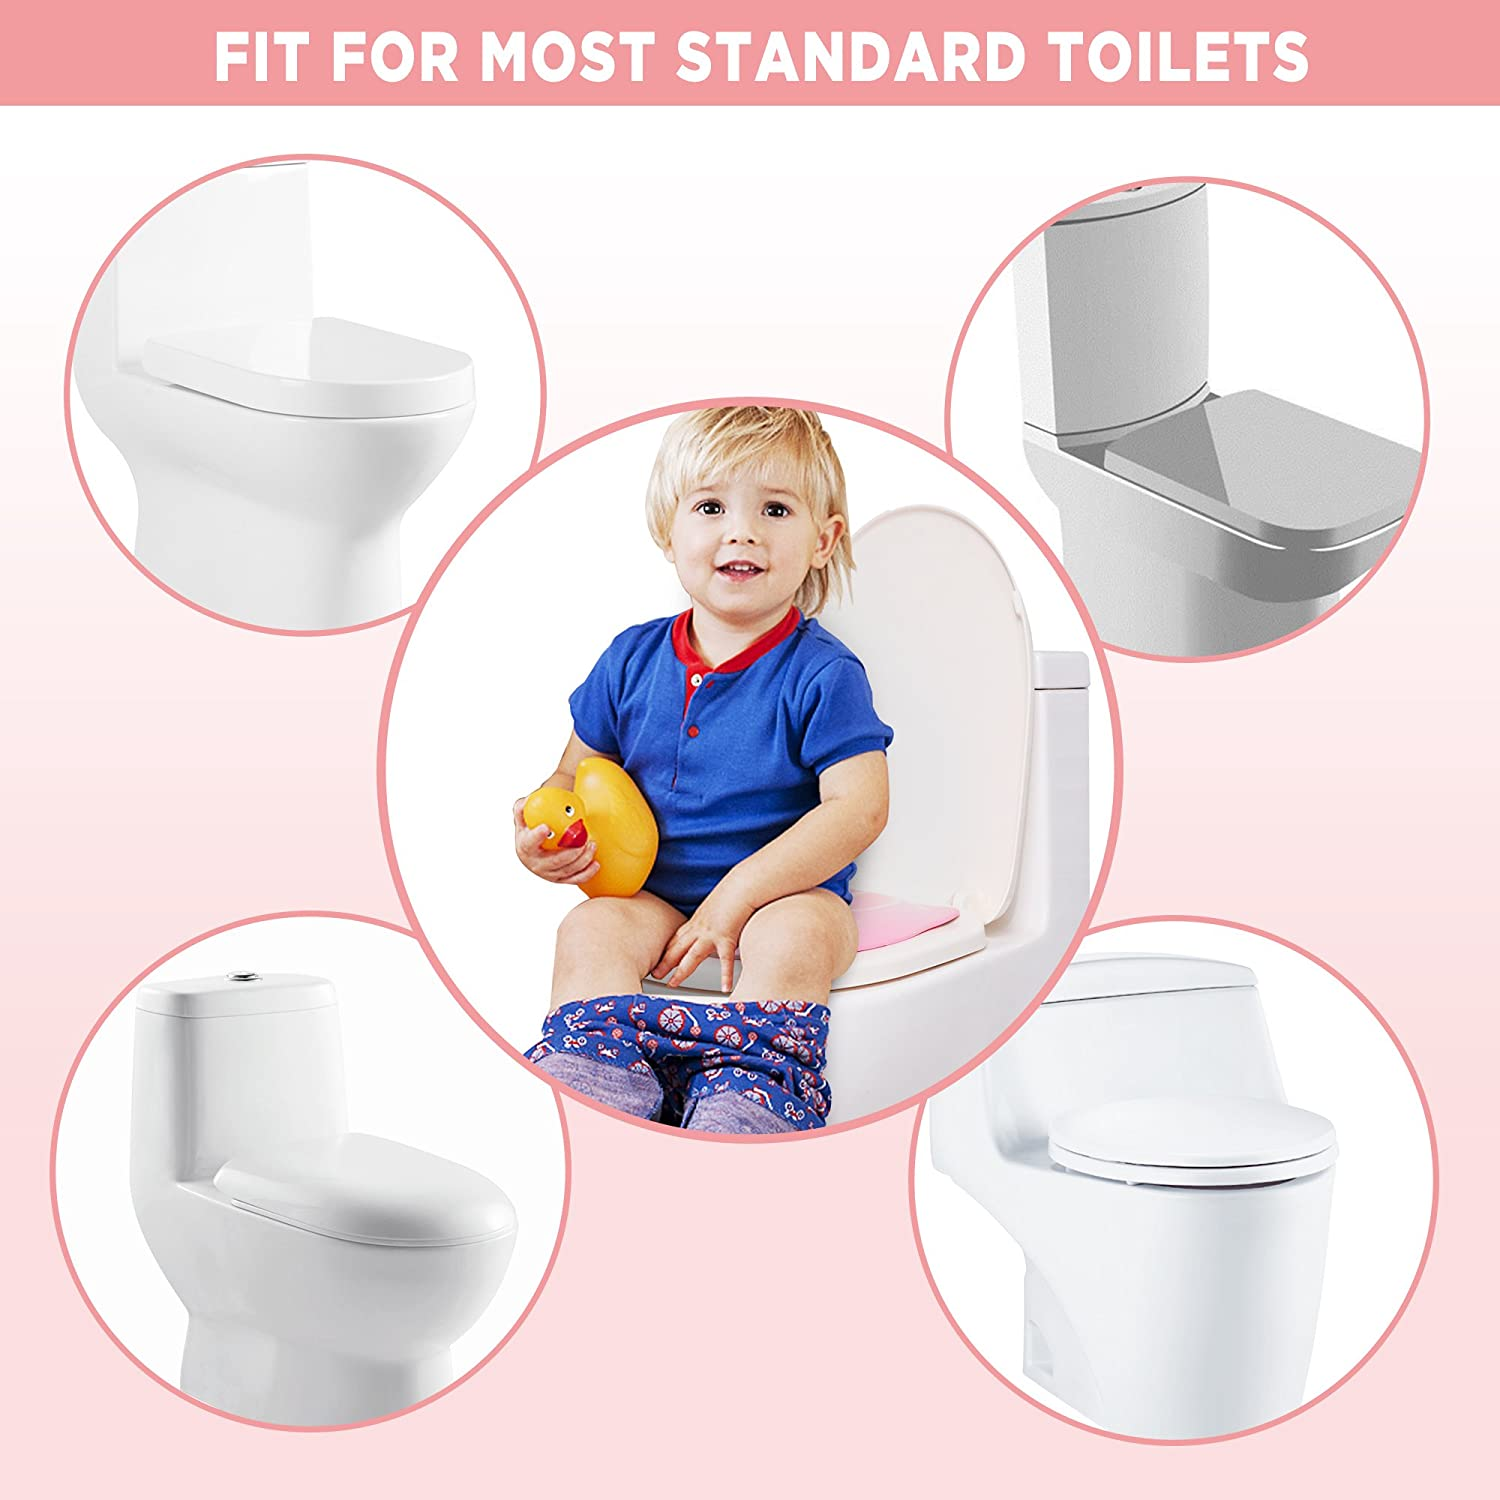 Pink Toddlers and Kids Firares Upgrade Folding Large Non Slip Silicone Pads Travel Portable Reusable Toilet Potty Training Seat Covers Liners with Carry Bag for Babies